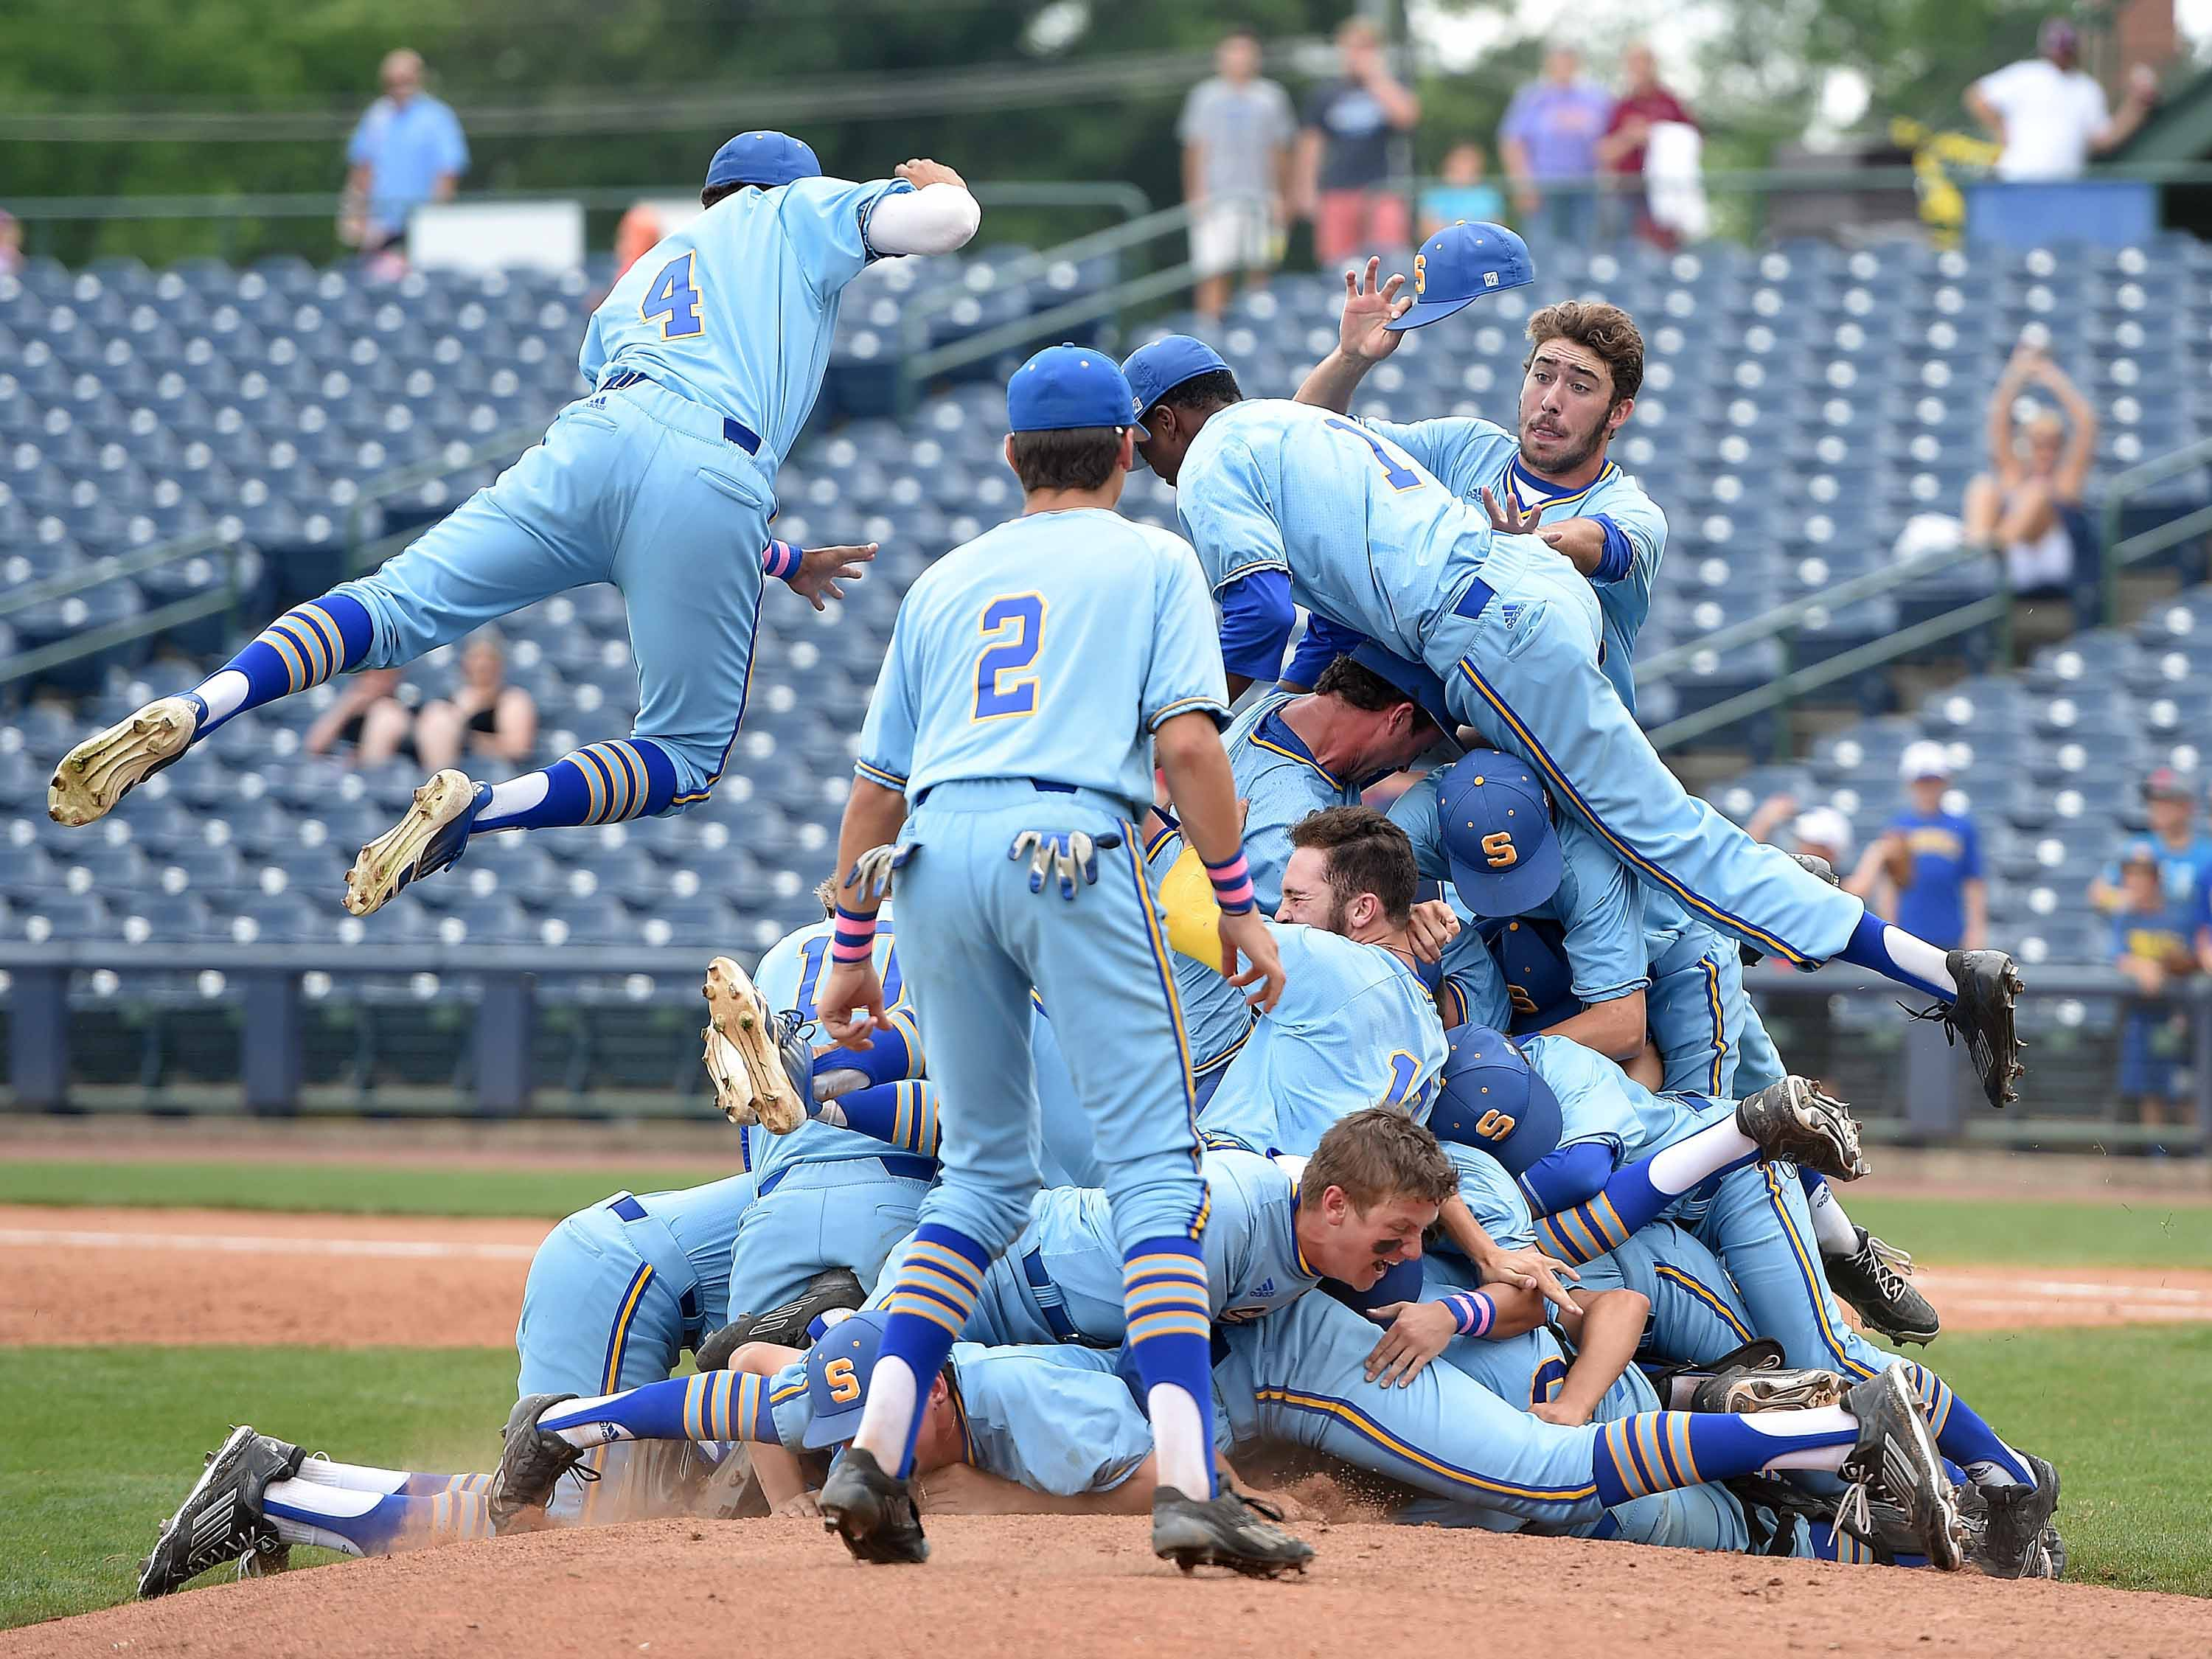 The Sumrall celebration begins with the traditional dog pile near the pitcher's mound after the Bobcats beat Belmont 7-2 in Game 3 on Saturday, the final day of the 2015 MHSAA Baseball State Championships at Trustmark Park in Pearl.